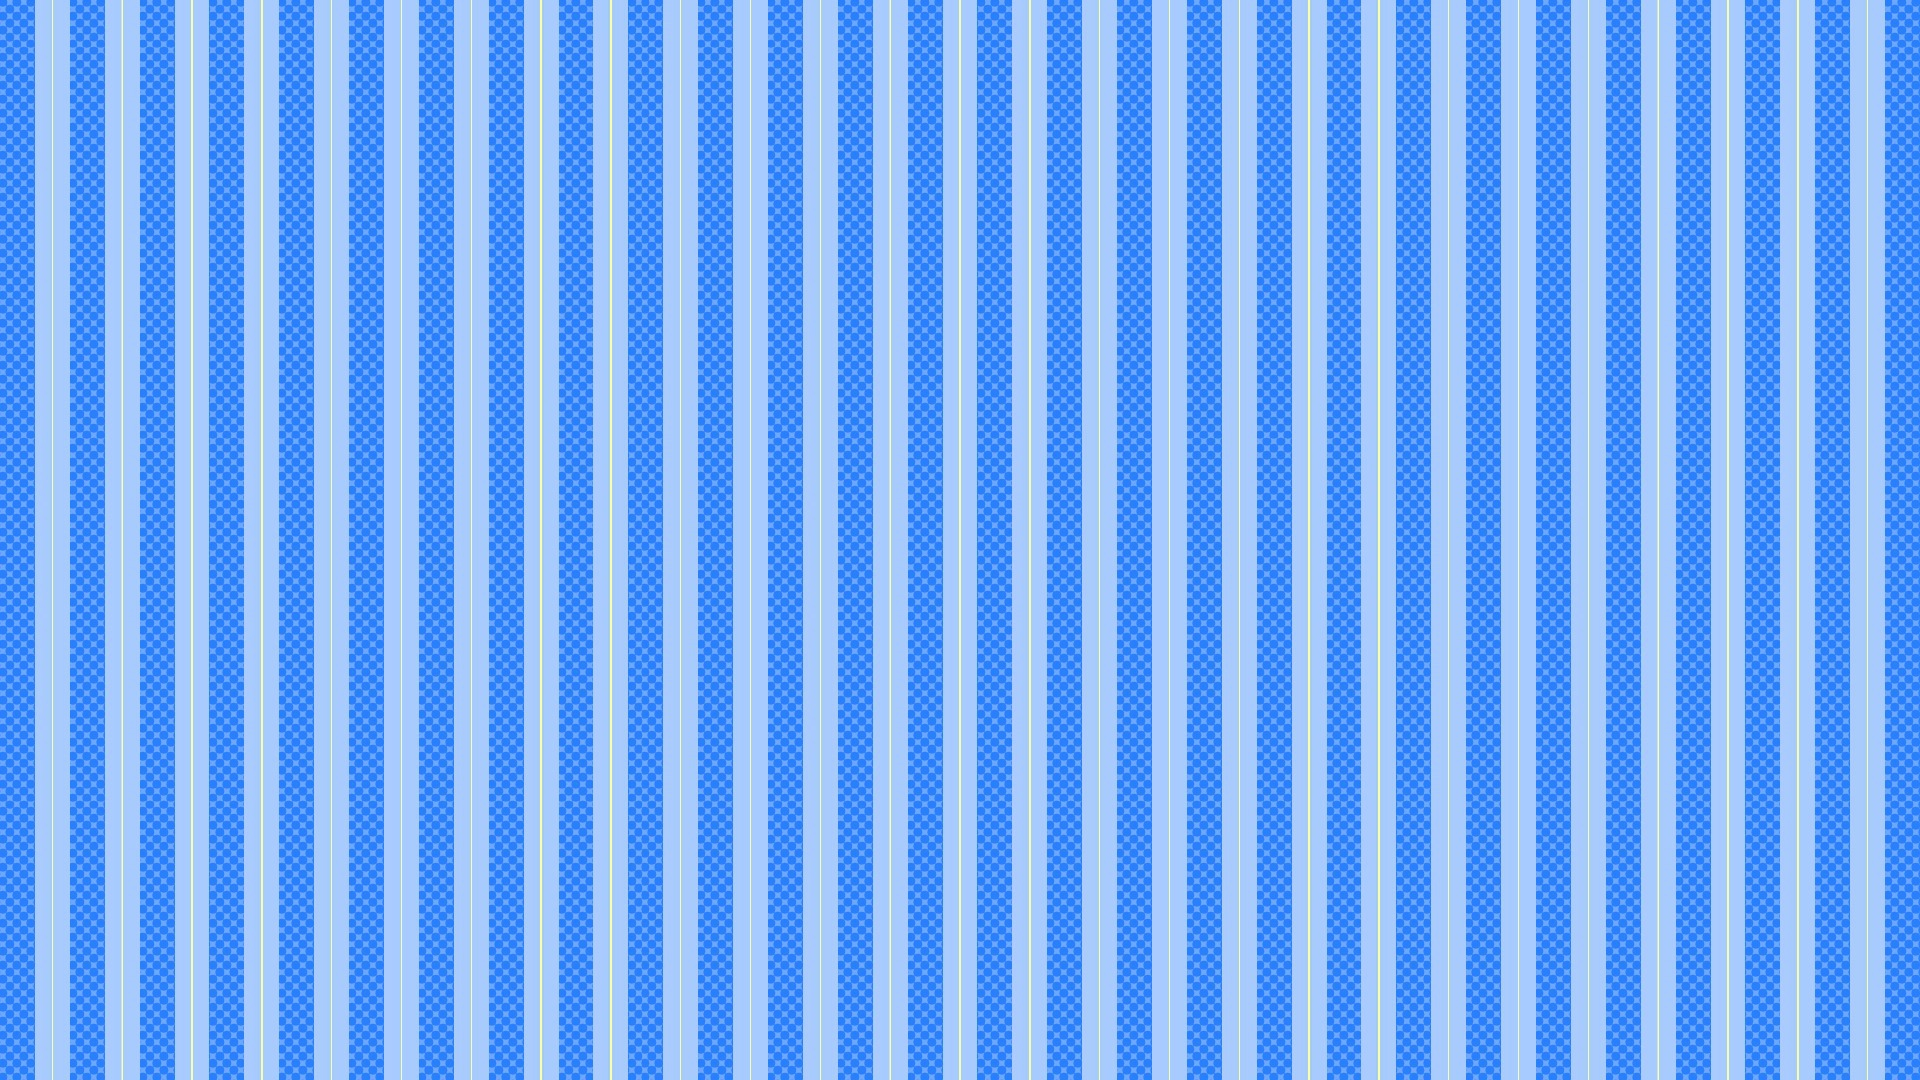 Download Yellow And Blue Striped Wallpaper Gallery: Vertical Blue Stripes Wallpapers And Images Wallpapers HQ